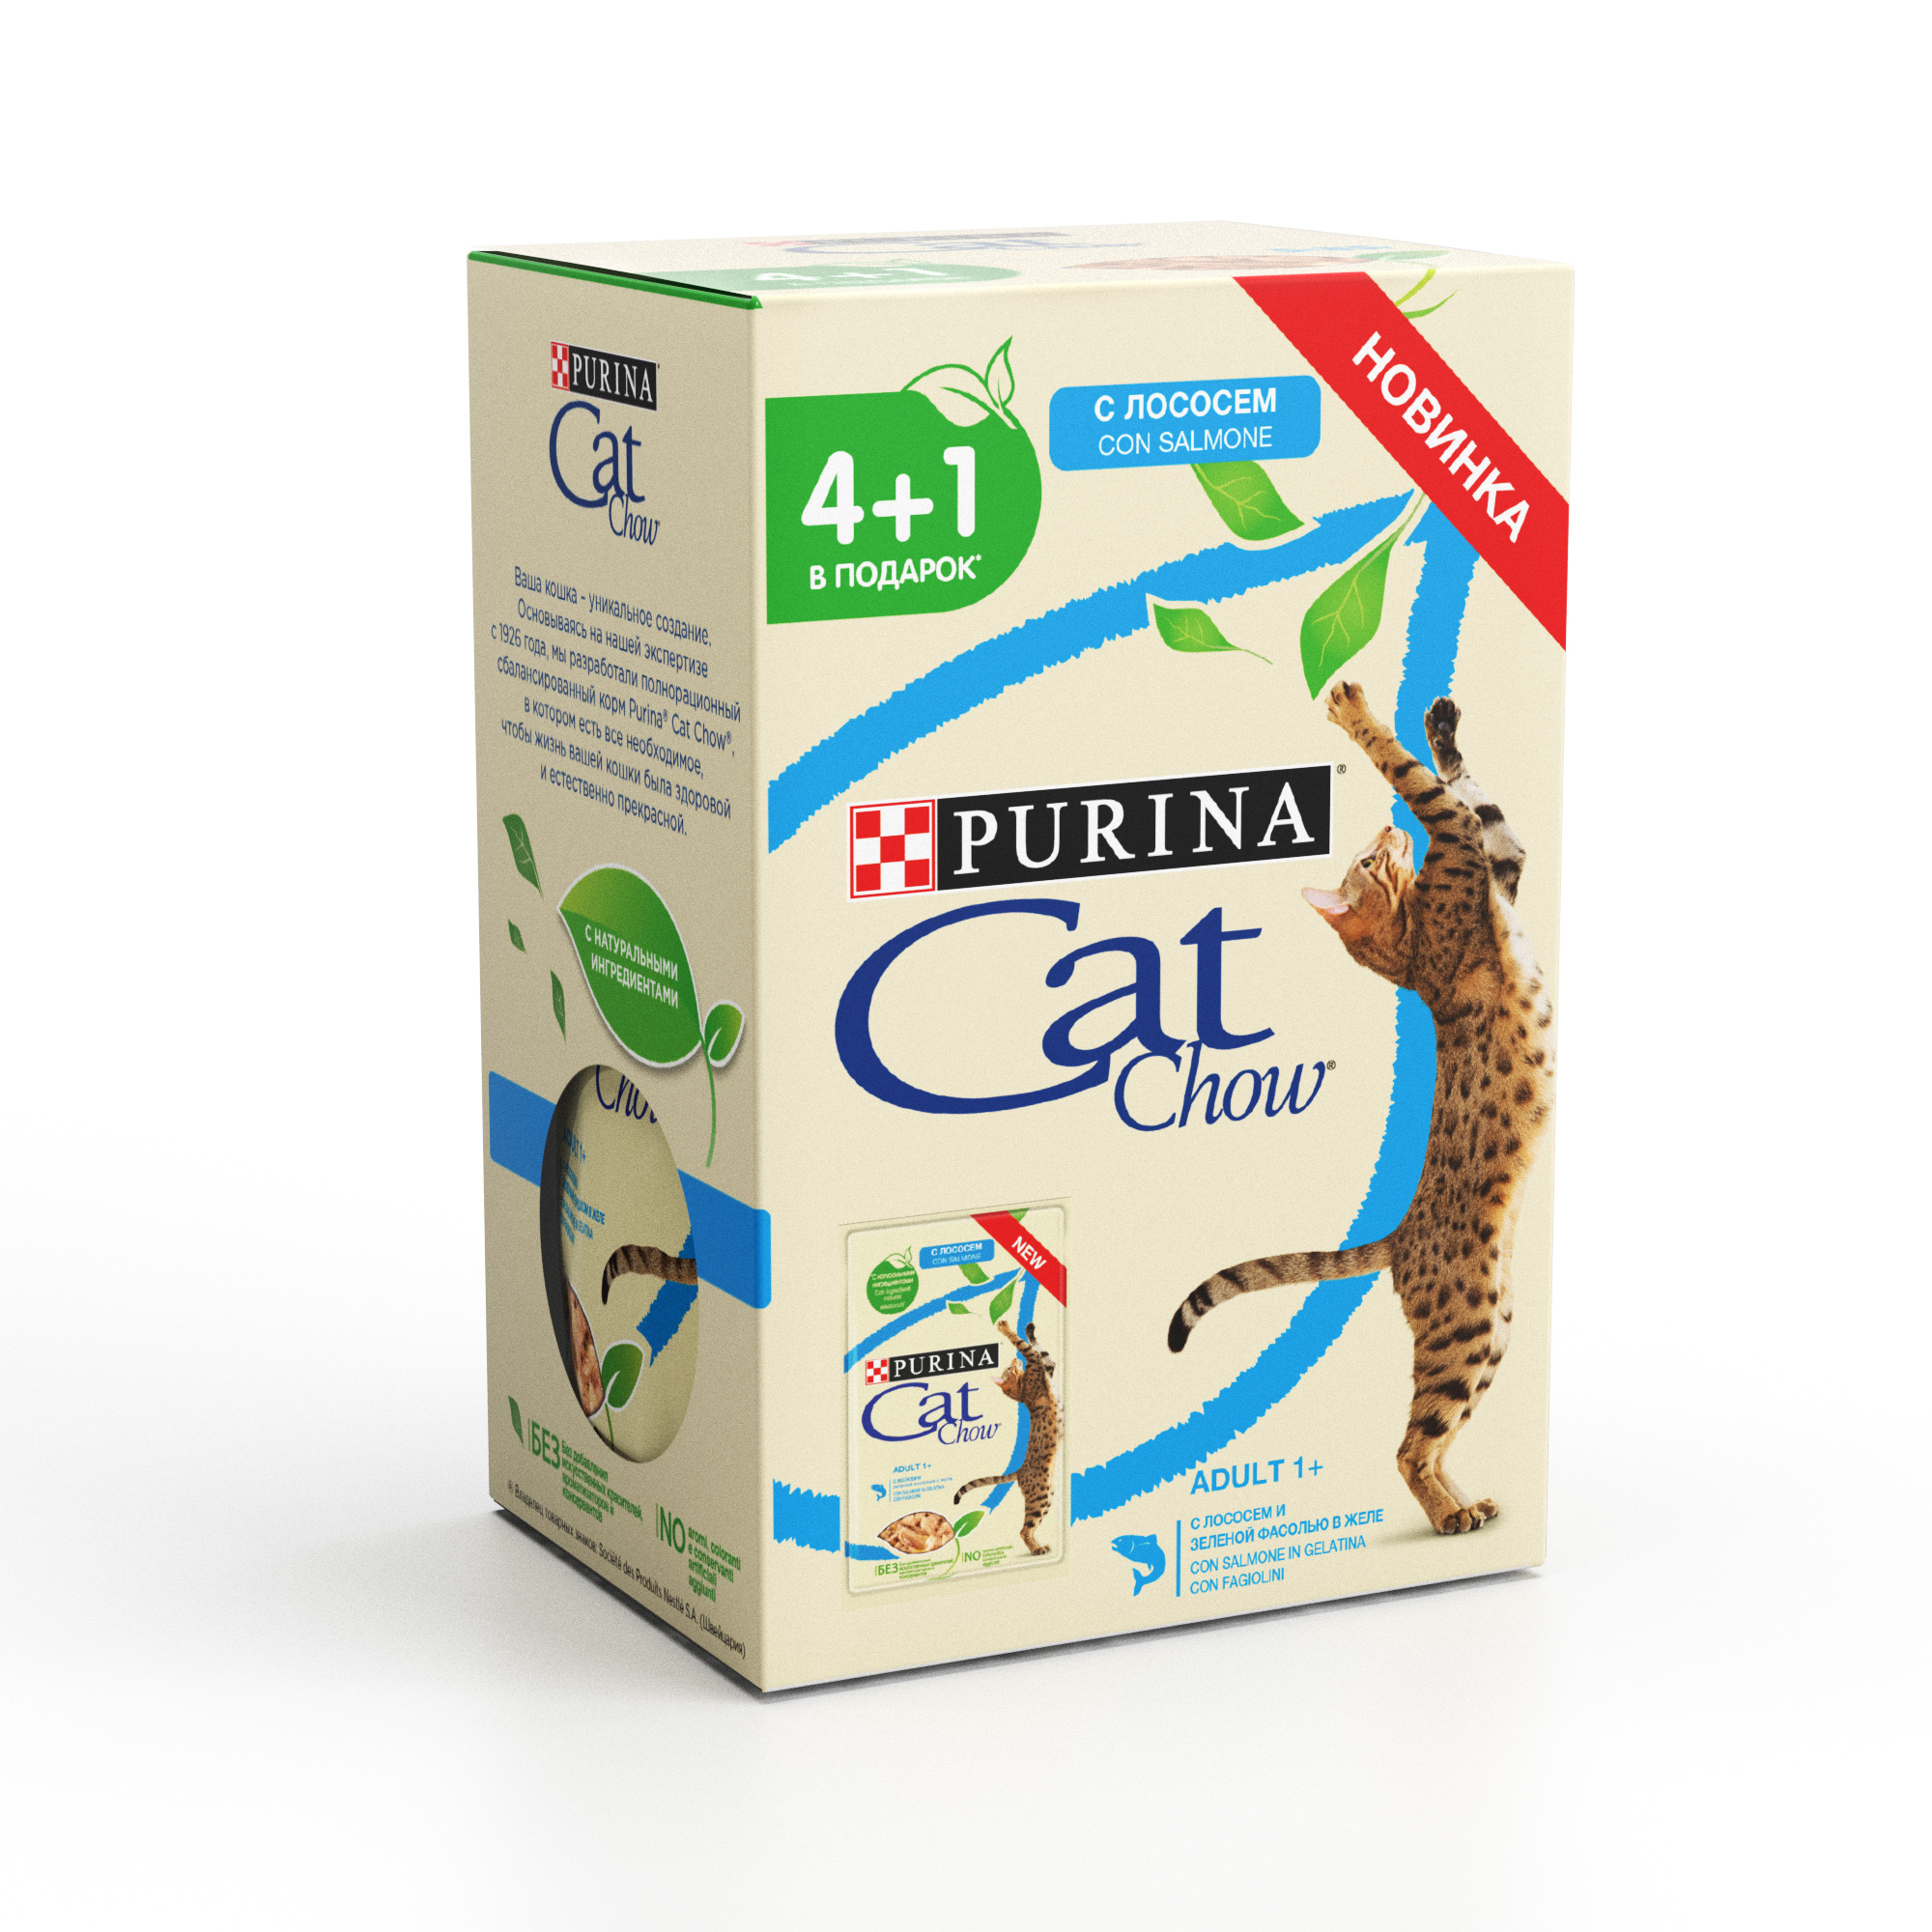 Promopak set: Cat Chow Wet Feed for Adult Cats with Salmon and Green Peas, 60 pouch (12 x (4 + 1)) x 85 g потребительские товары oem neato 4 x 4 x neato botvac 70 75 80 85 silicone blades and brushes for neato botvac